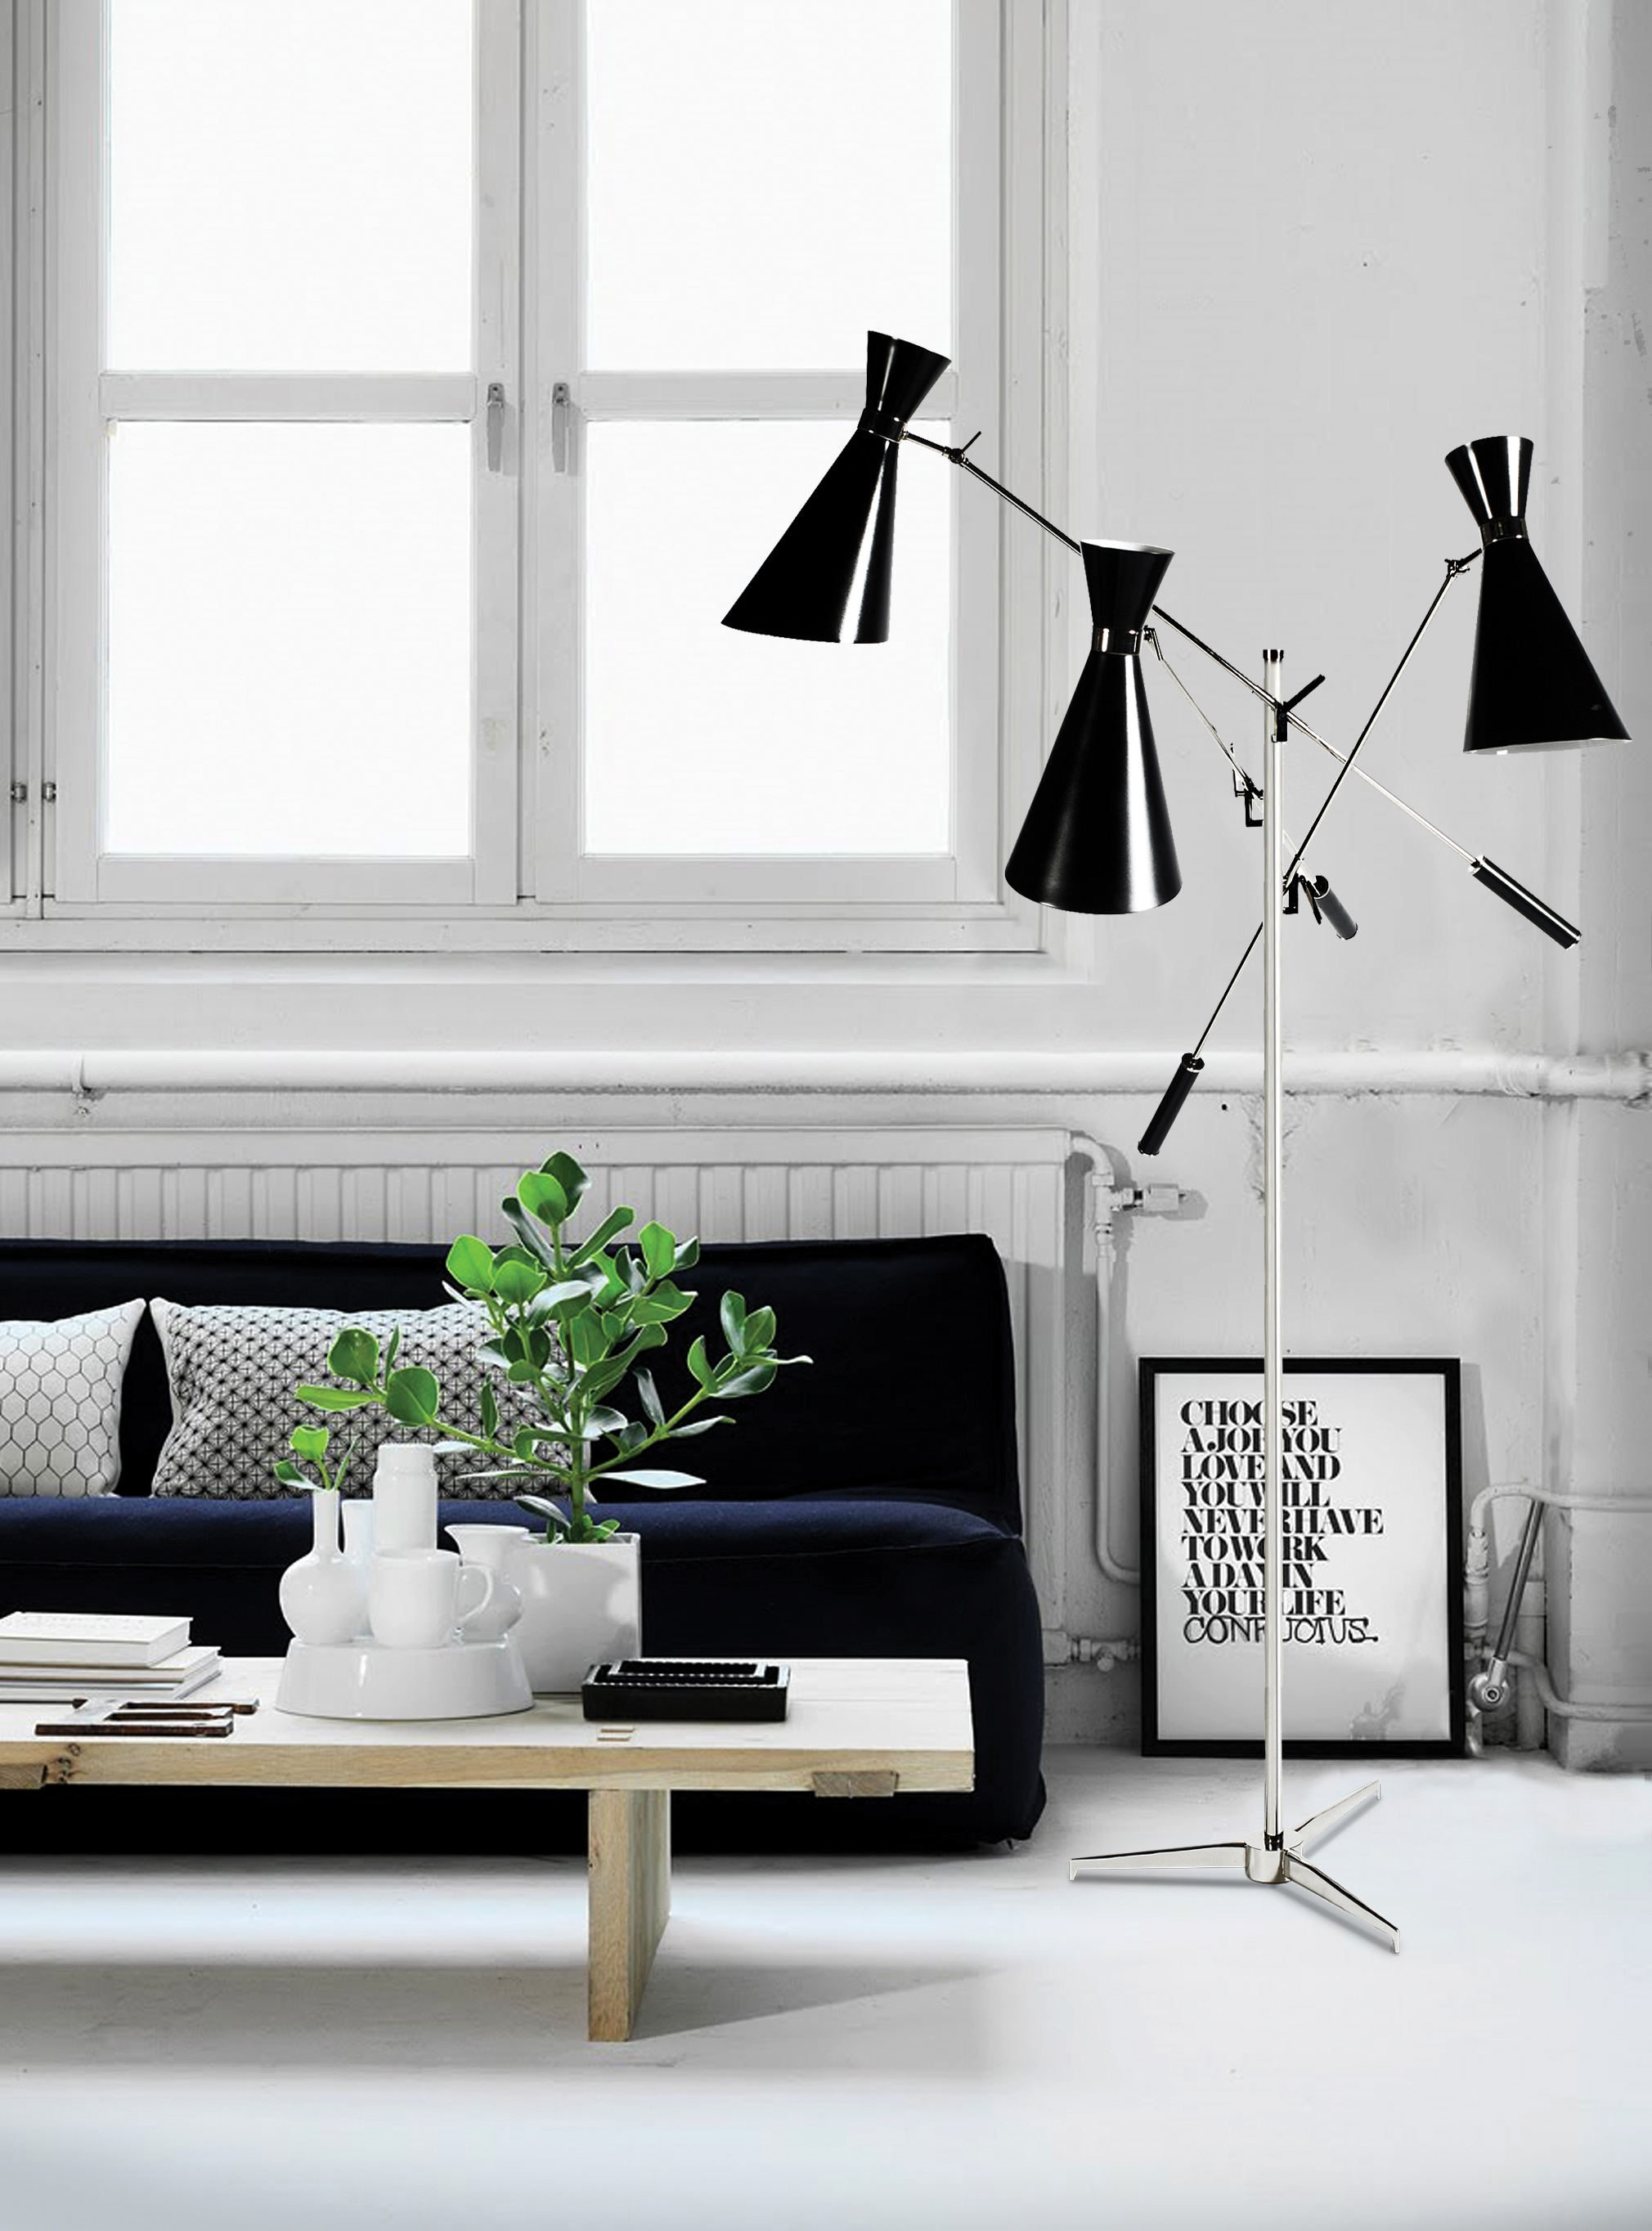 We Found the Scandinavian Living Room Ideas You Were Looking For scandinavian living room We Found the Scandinavian Living Room Ideas You Were Looking For We Found the Scandinavian Living Room Ideas You Were Looking For 8